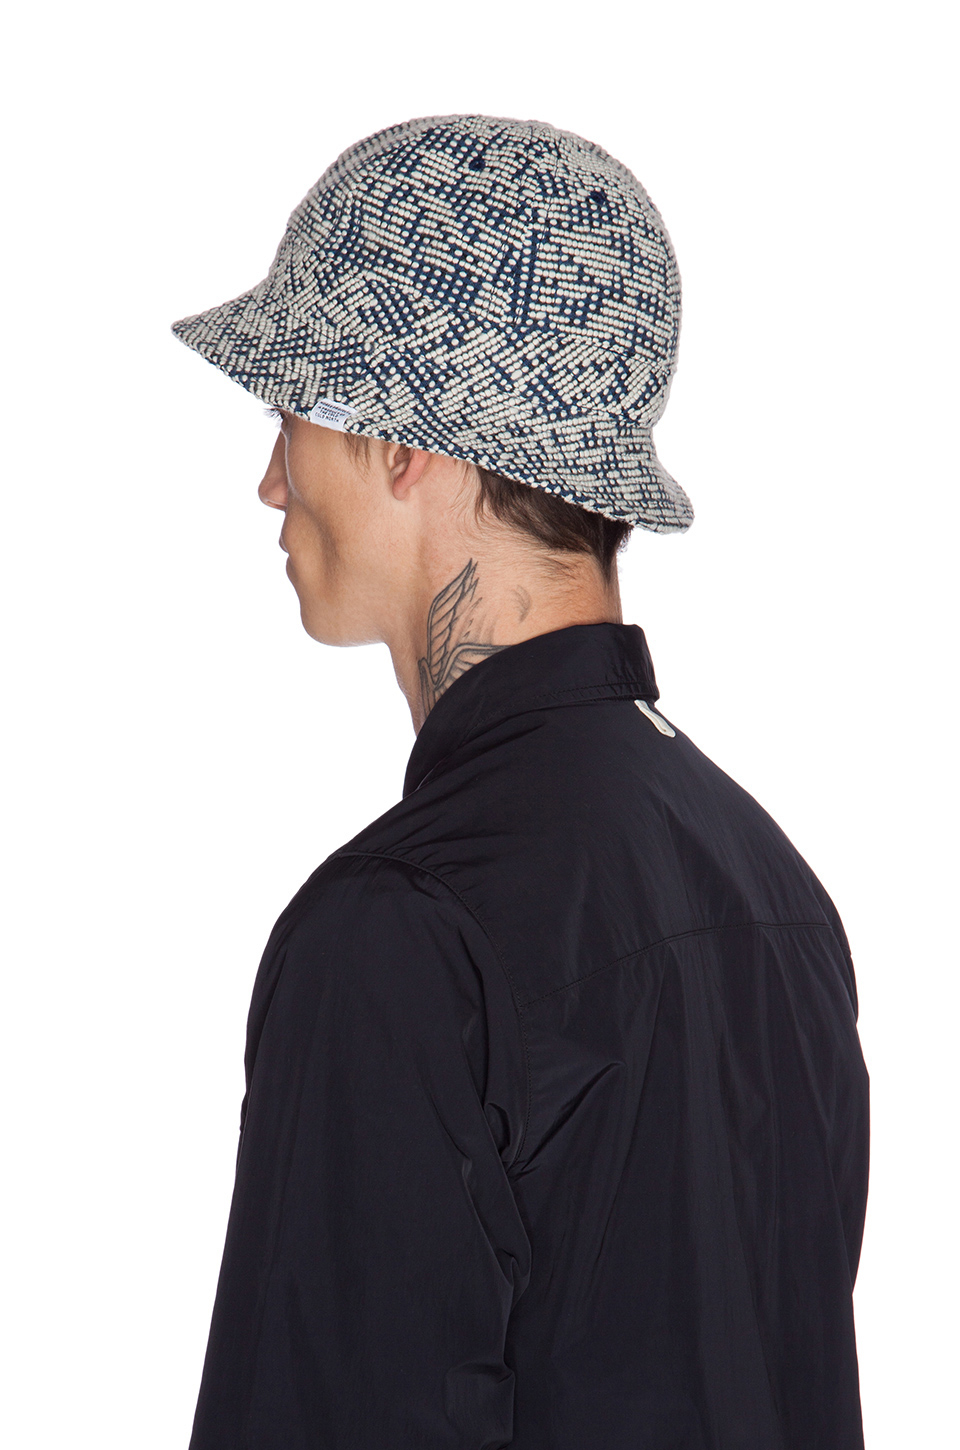 98c83764872 Lyst - Norse Projects Bubble Weave Bucket Hat in White for Men